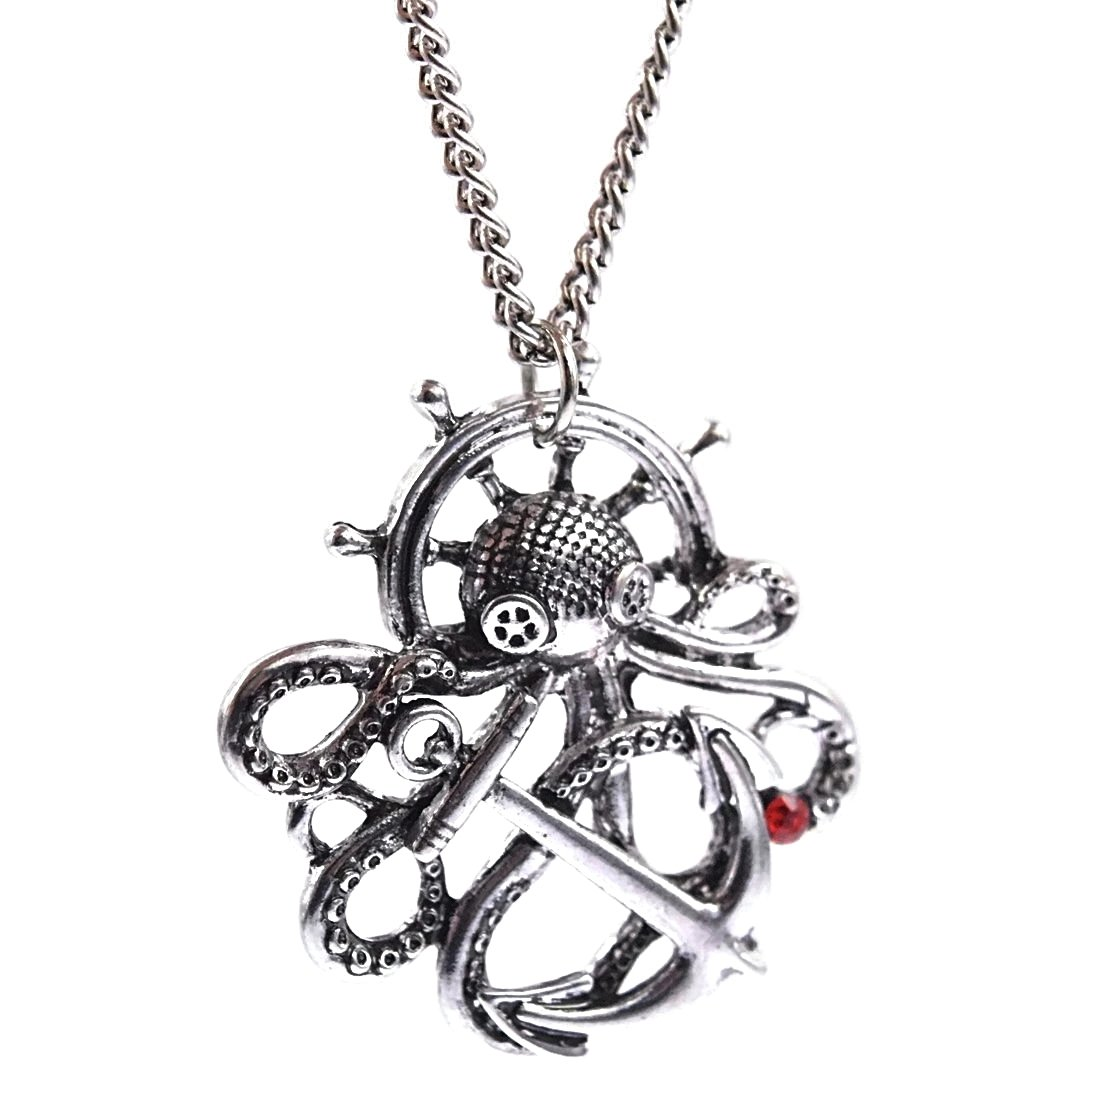 Amazon.com: Bling Cartel Octopus Steampunk Necklace Silver ...